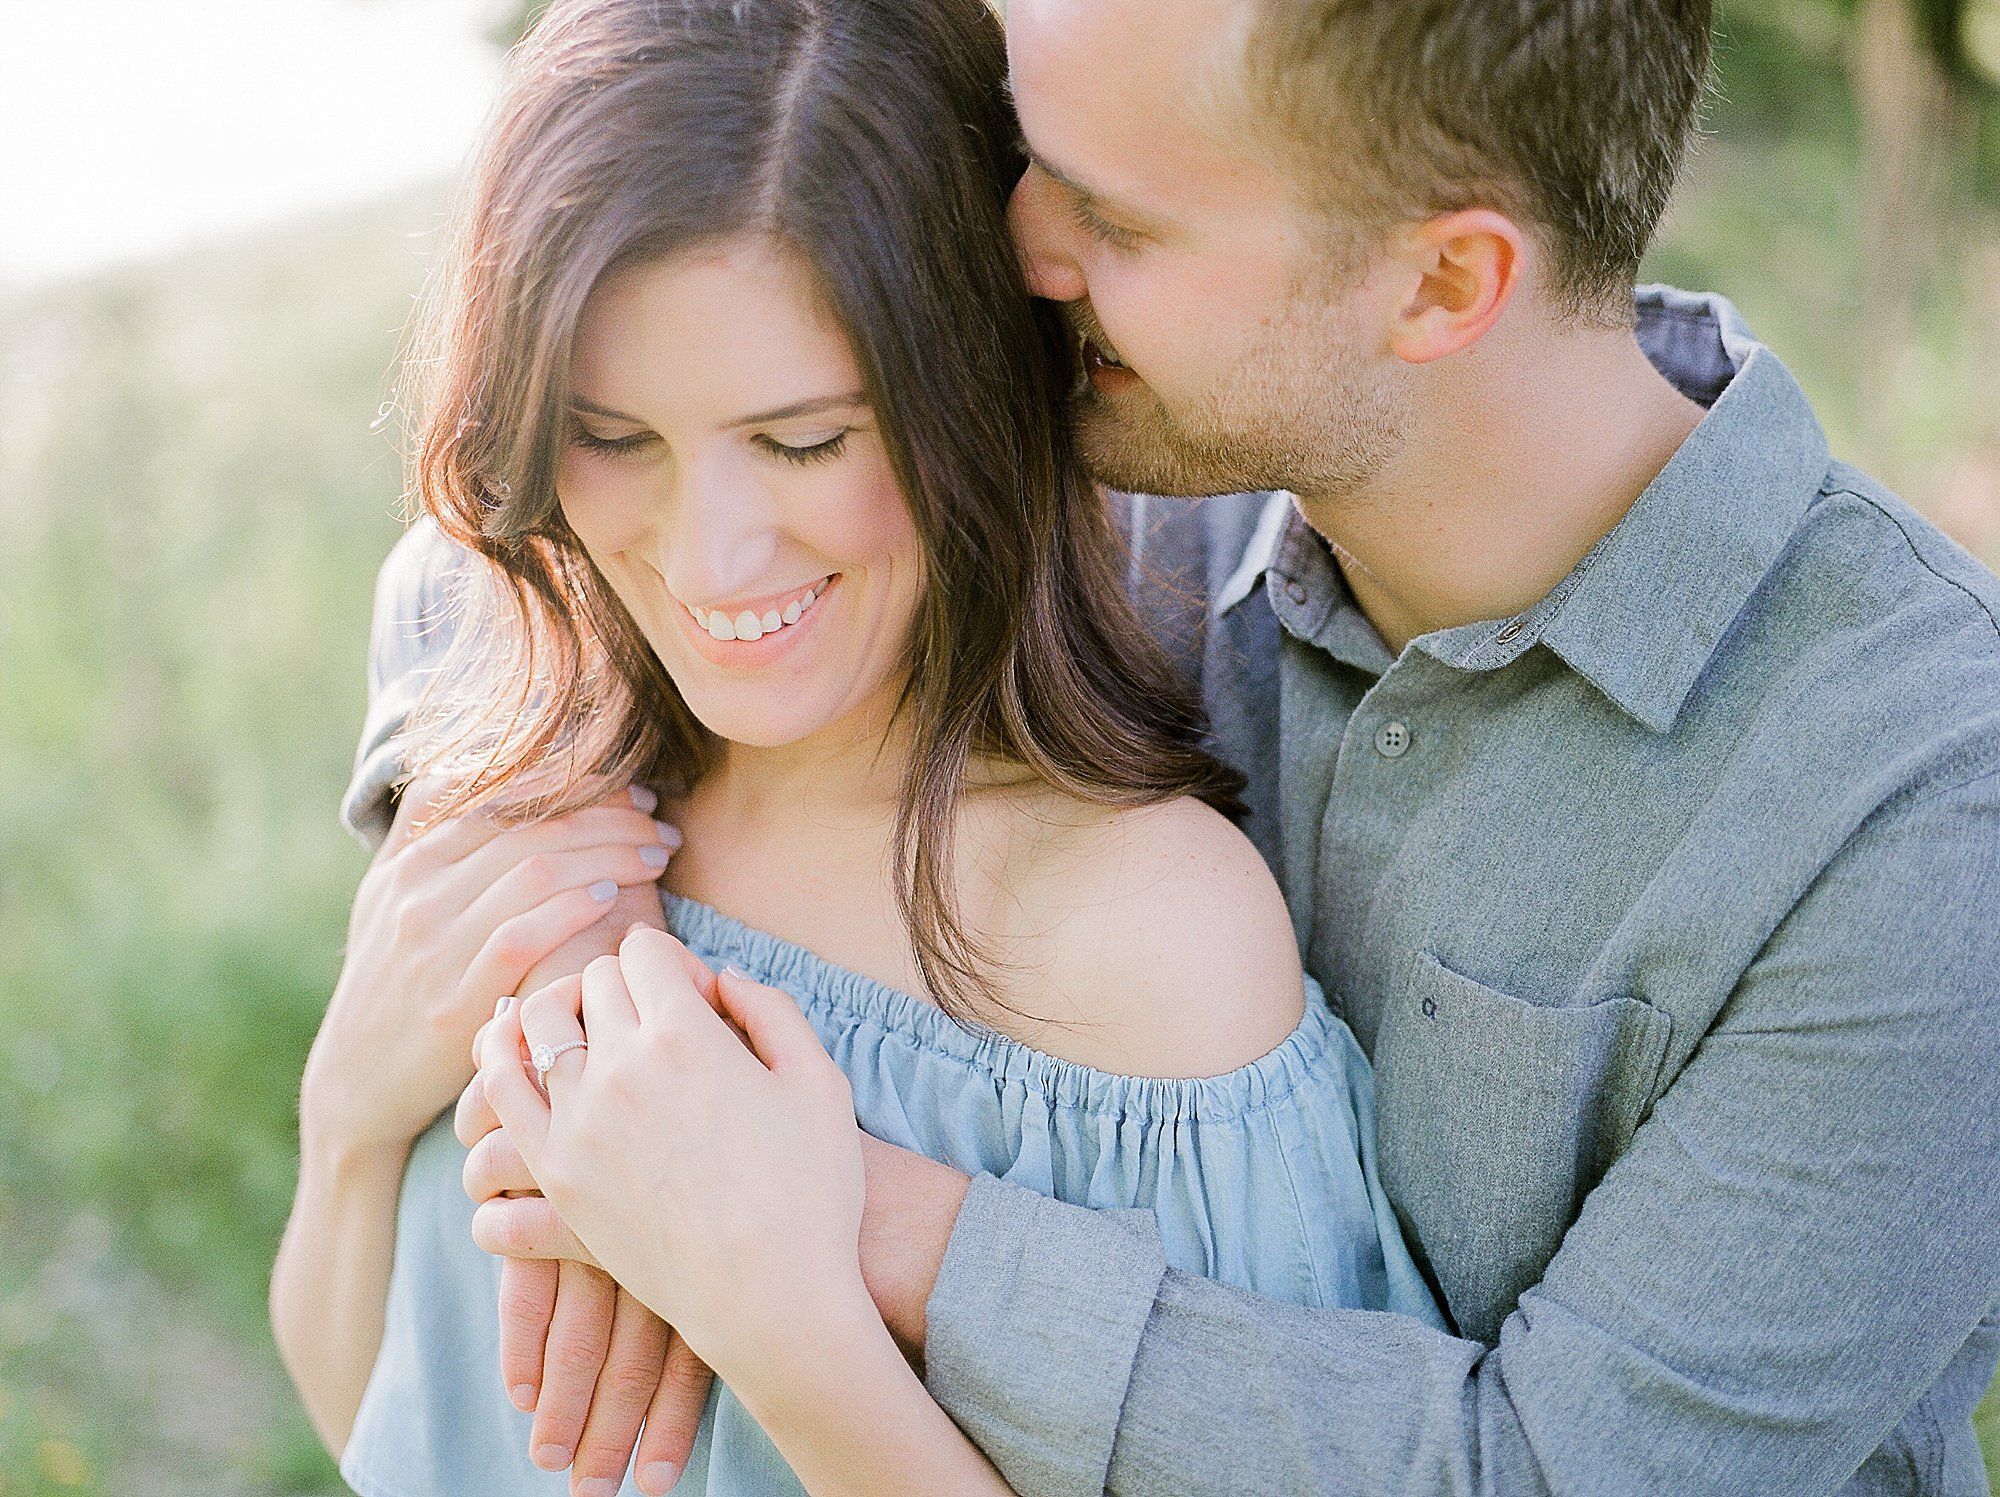 romantic engagement session, engagement photos pose ideas, outfit ideas for summer engagement pics, winnipeg wedding